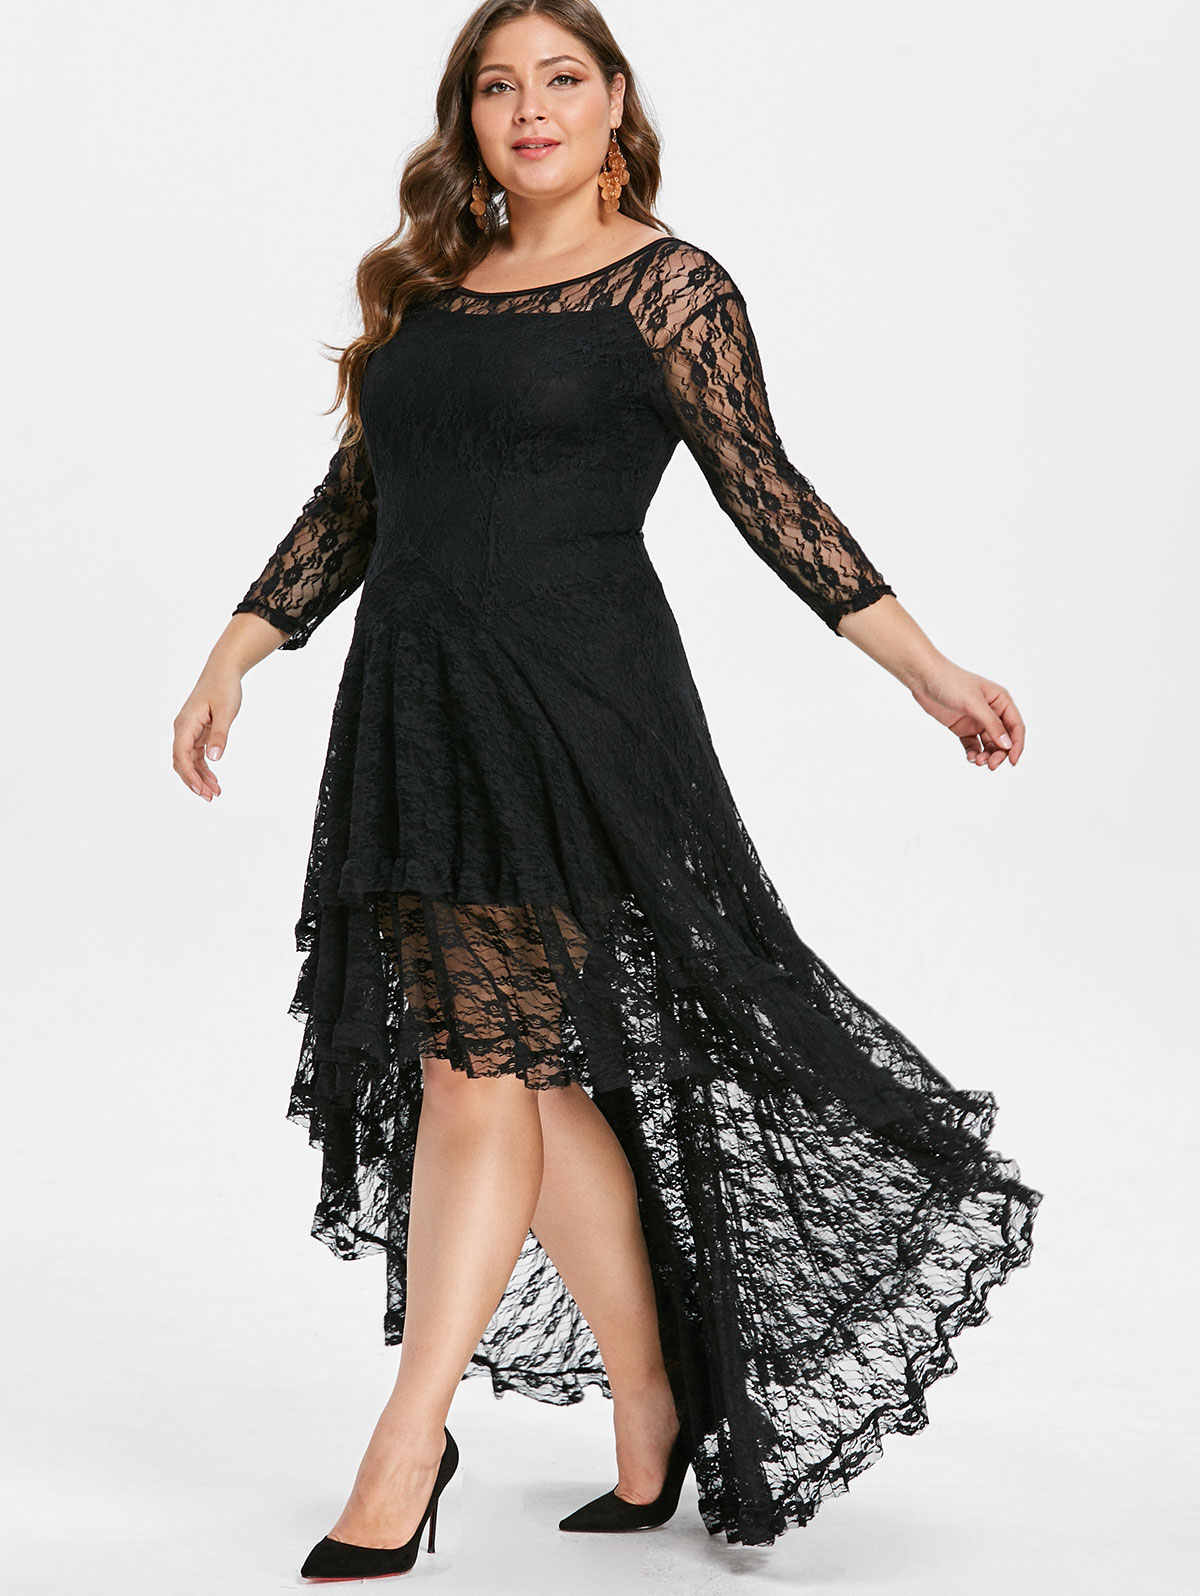 ac6cd78f18c5 ... AZULINA Plus Size High Low Lace Dress With Cami Dress Women Clothes  Fall Spring See Thru ...